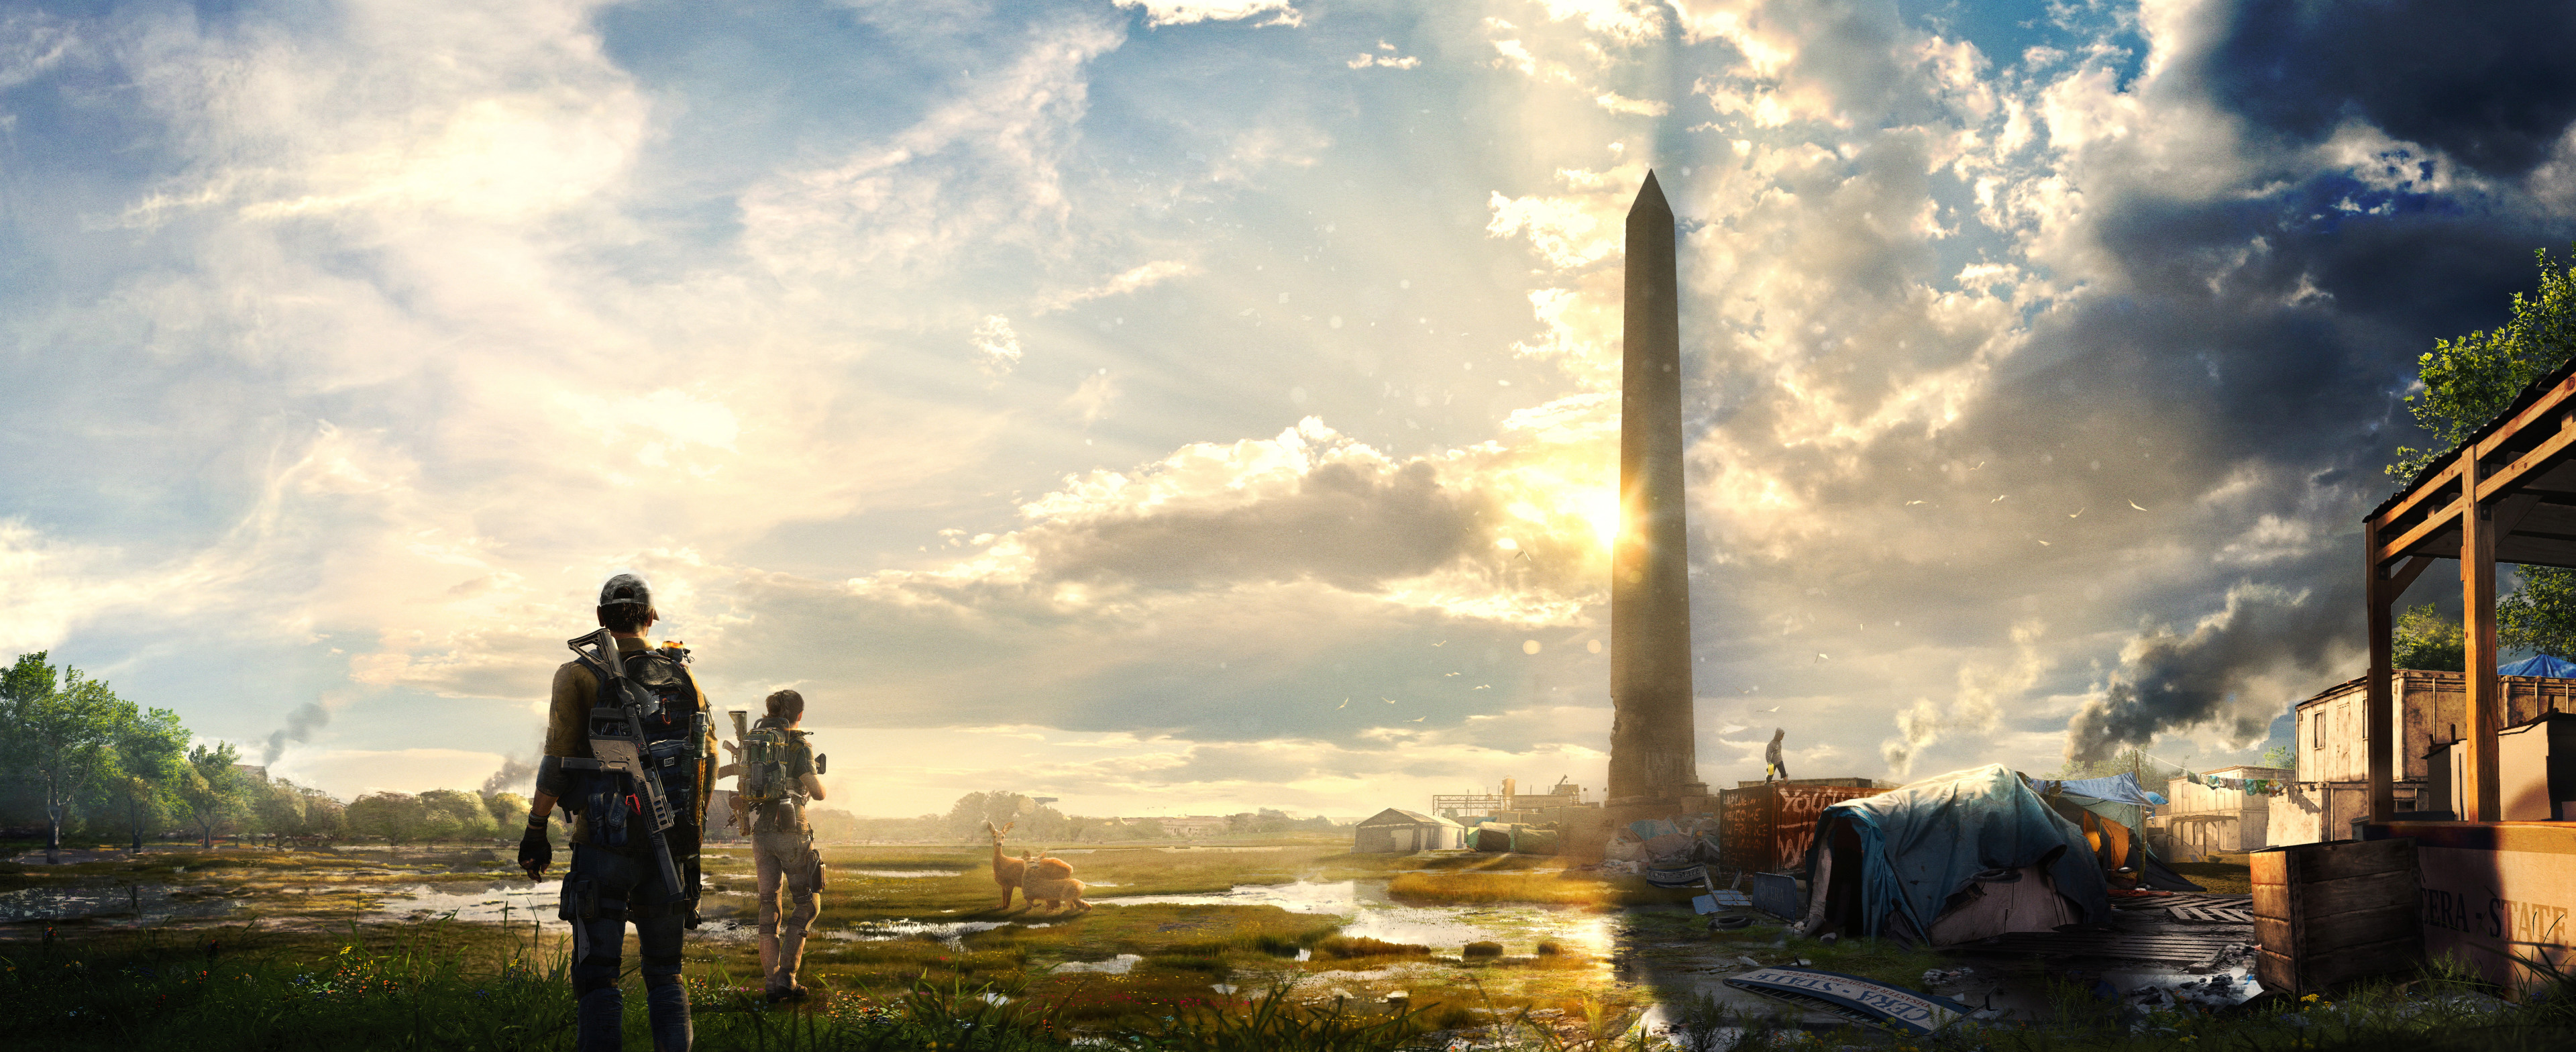 1360x768 Tom Clancys The Division 2 E3 Laptop HD HD 4k ...